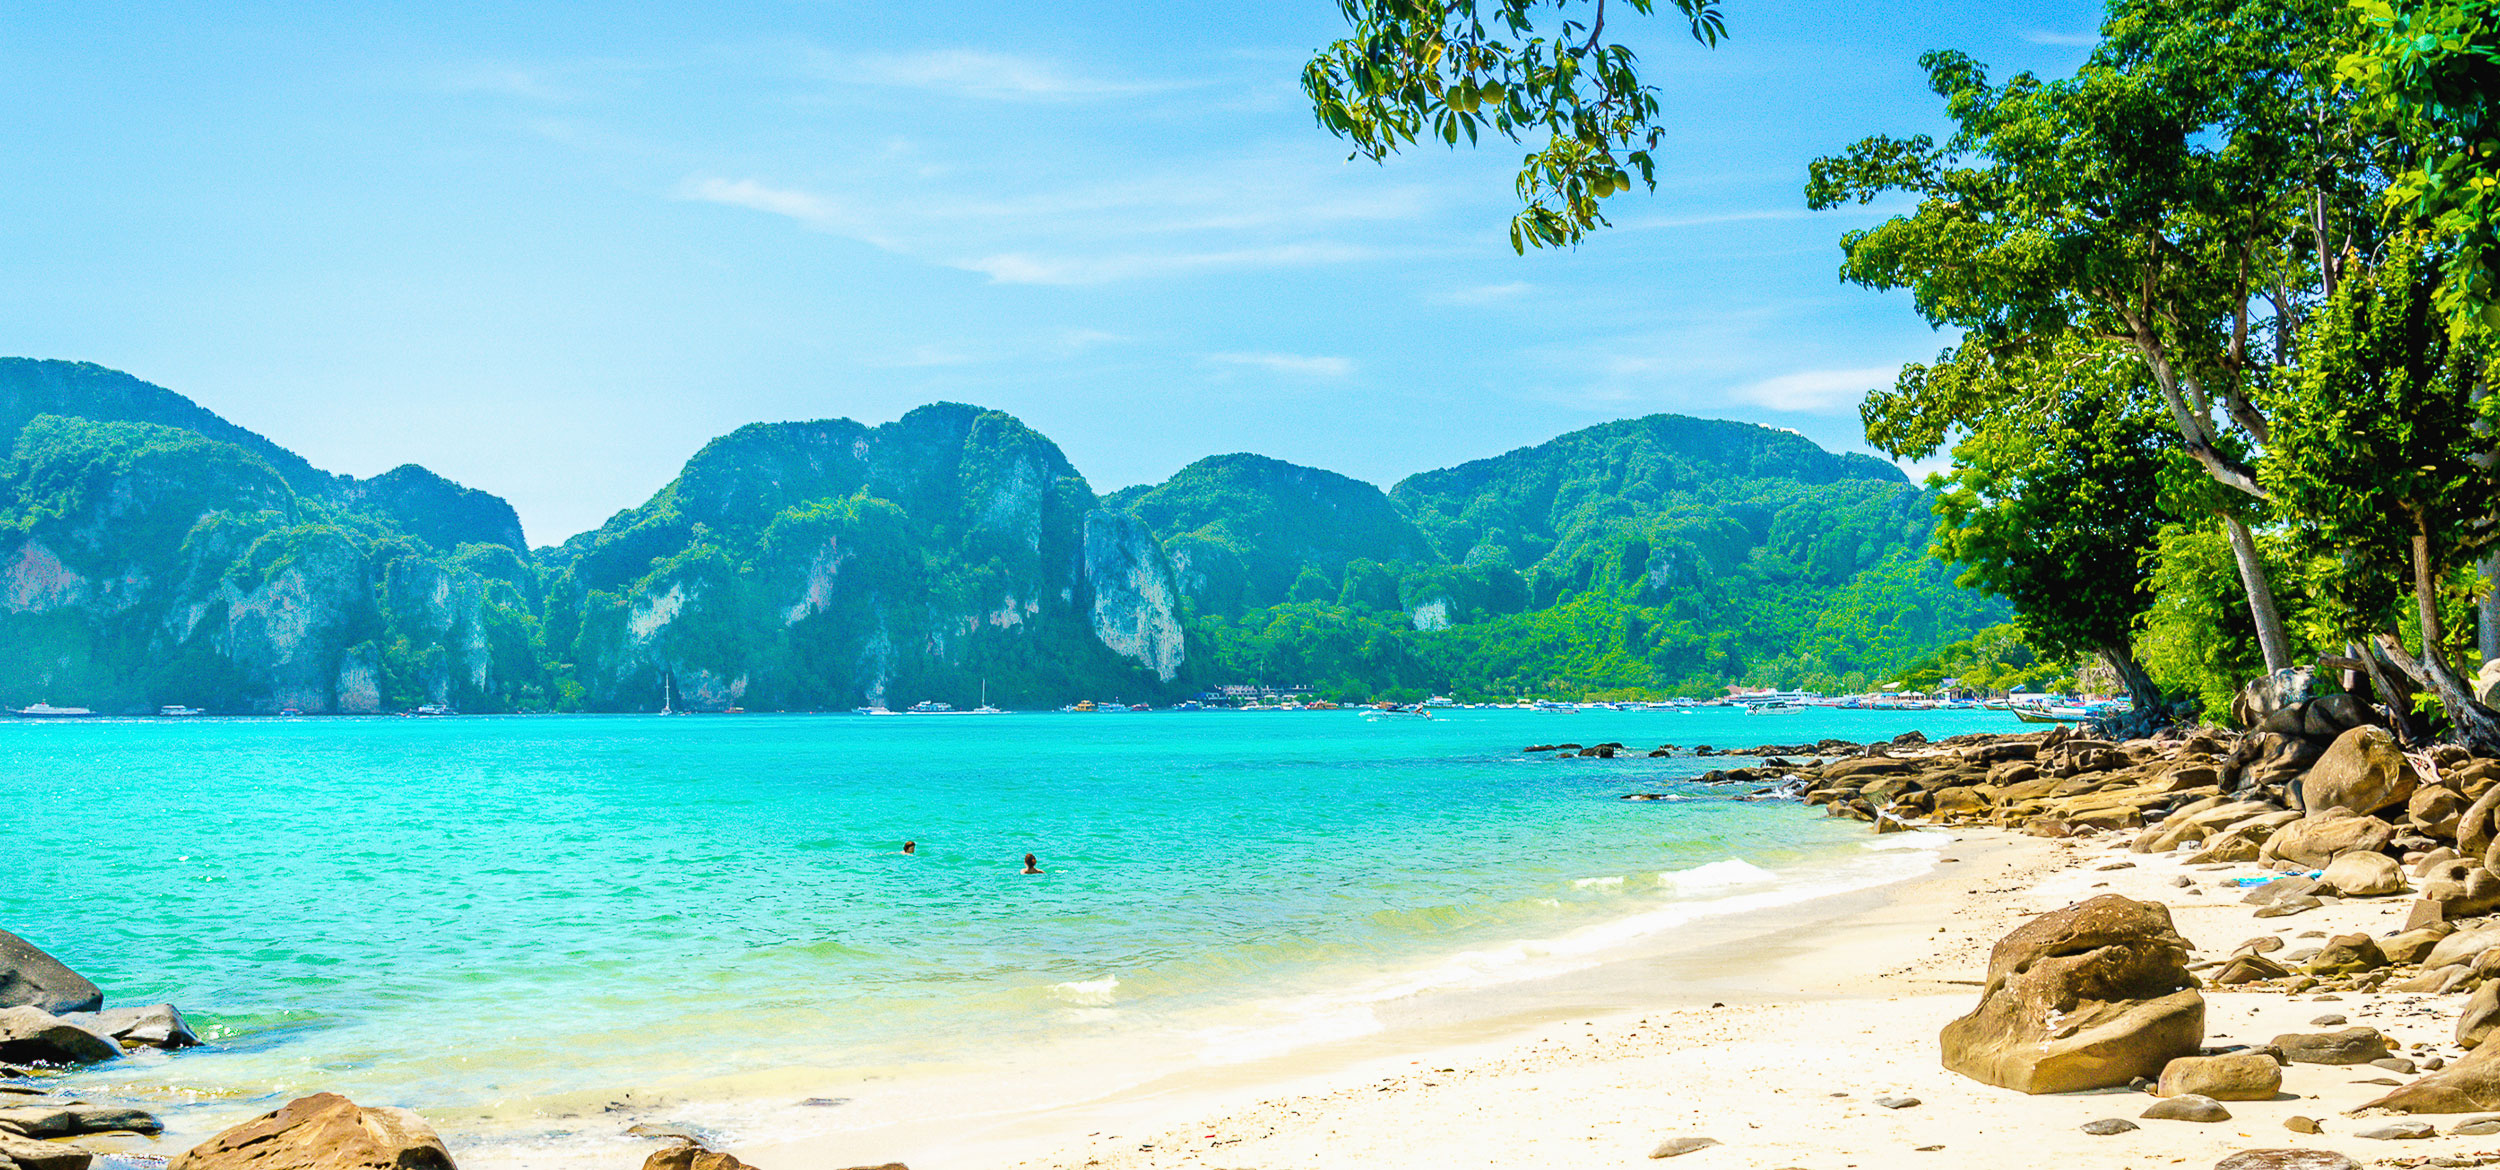 Verdant mountains make for a beautiful background to clear blue waters of a beach in Thailand.